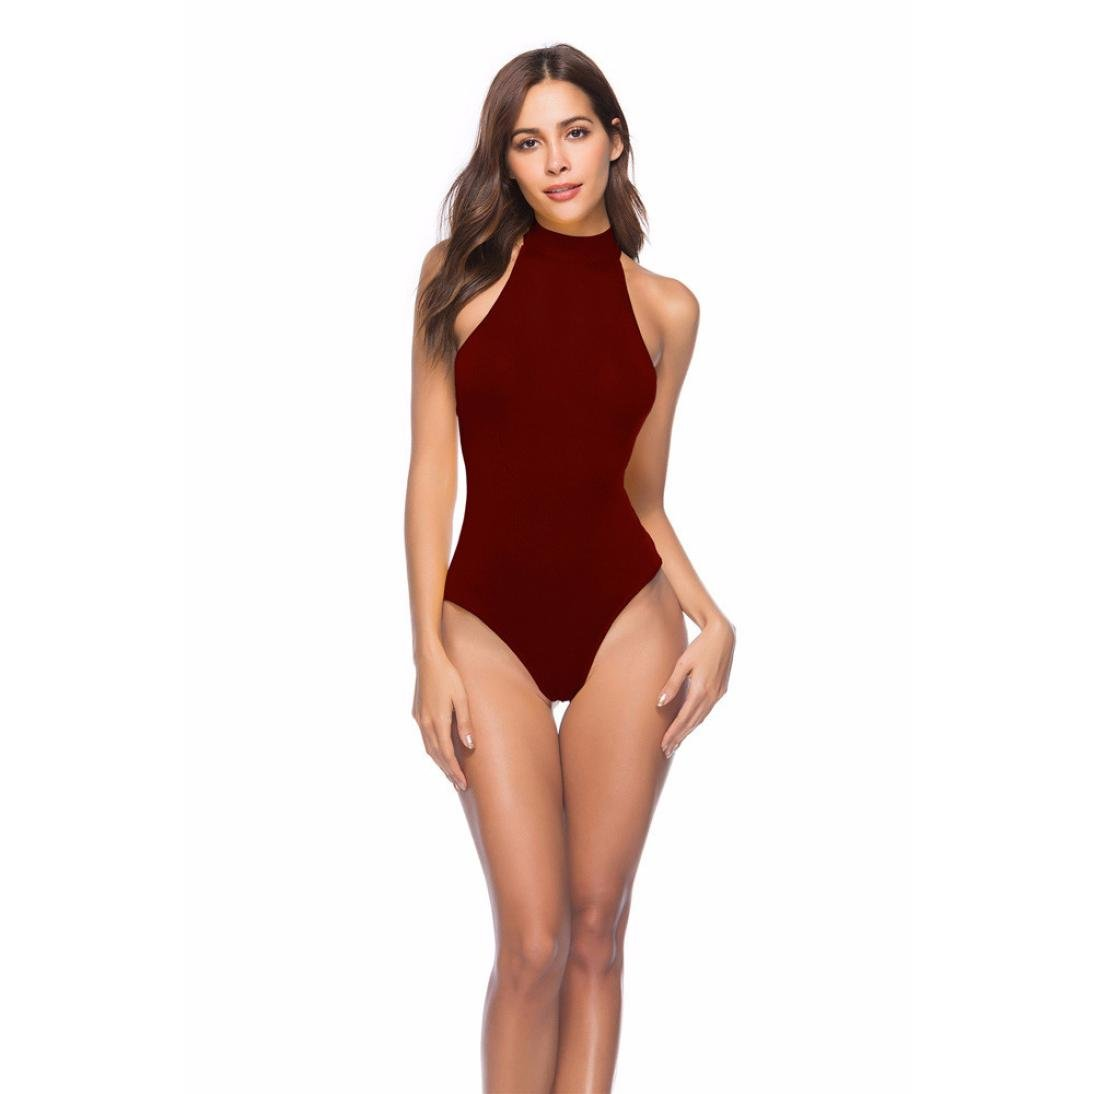 916dba27f42a Challyhope Women Sexy Solid Halter Bikini Skinny Bodysuit Backless Lace-up  Playsuit at Amazon Women's Clothing store: